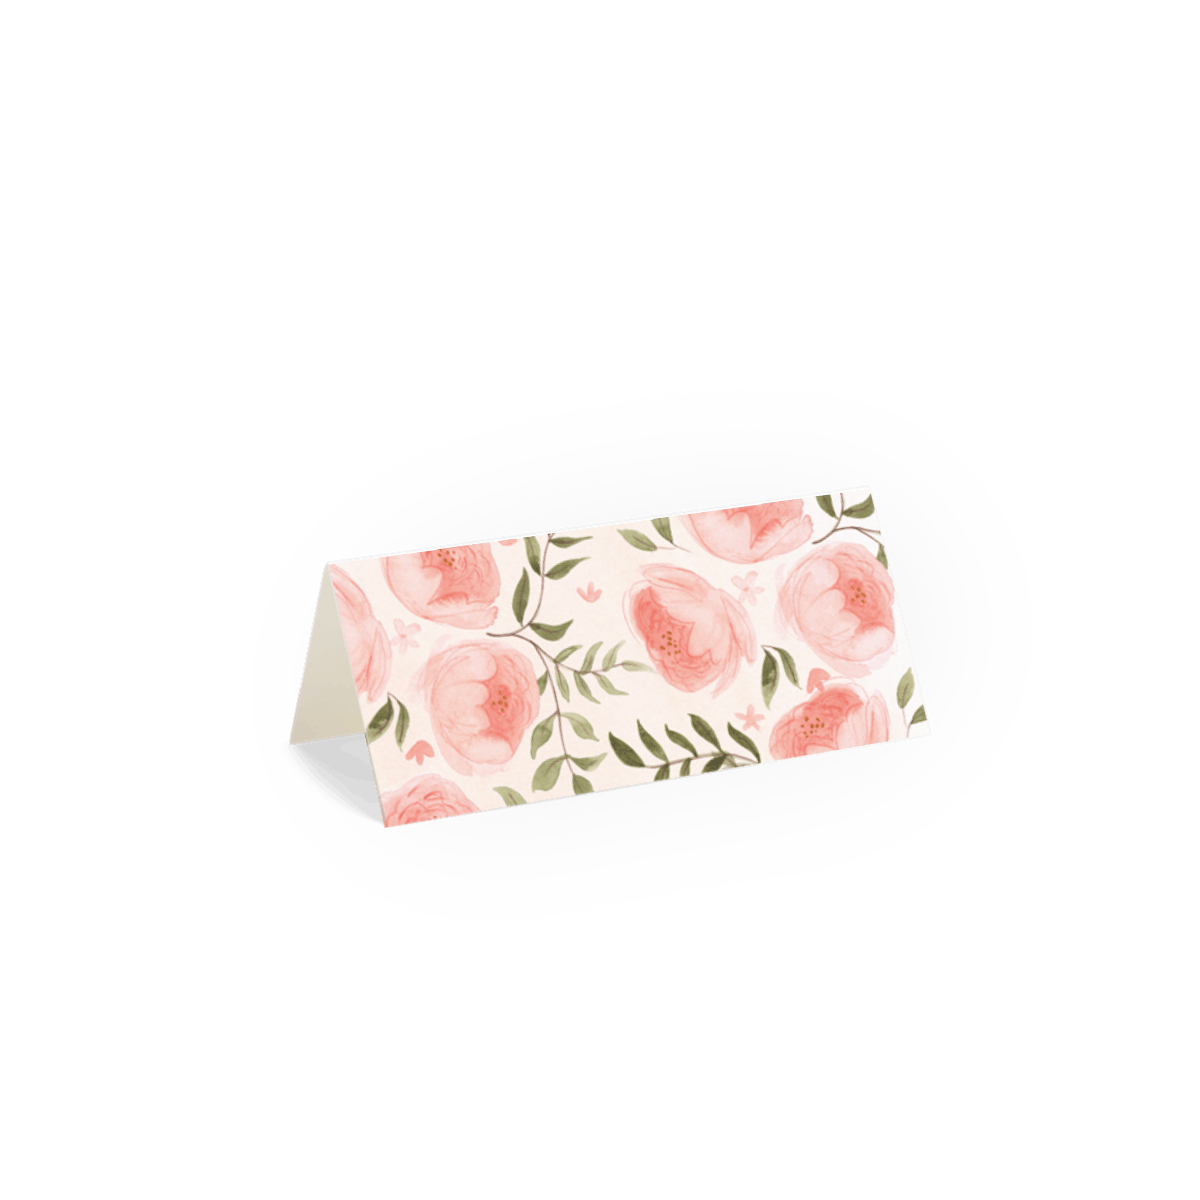 Https%3a%2f%2fwww.papier.com%2fproduct image%2f82531%2f15%2fblooming peonies 19978 back 1562149970.png?ixlib=rb 1.1